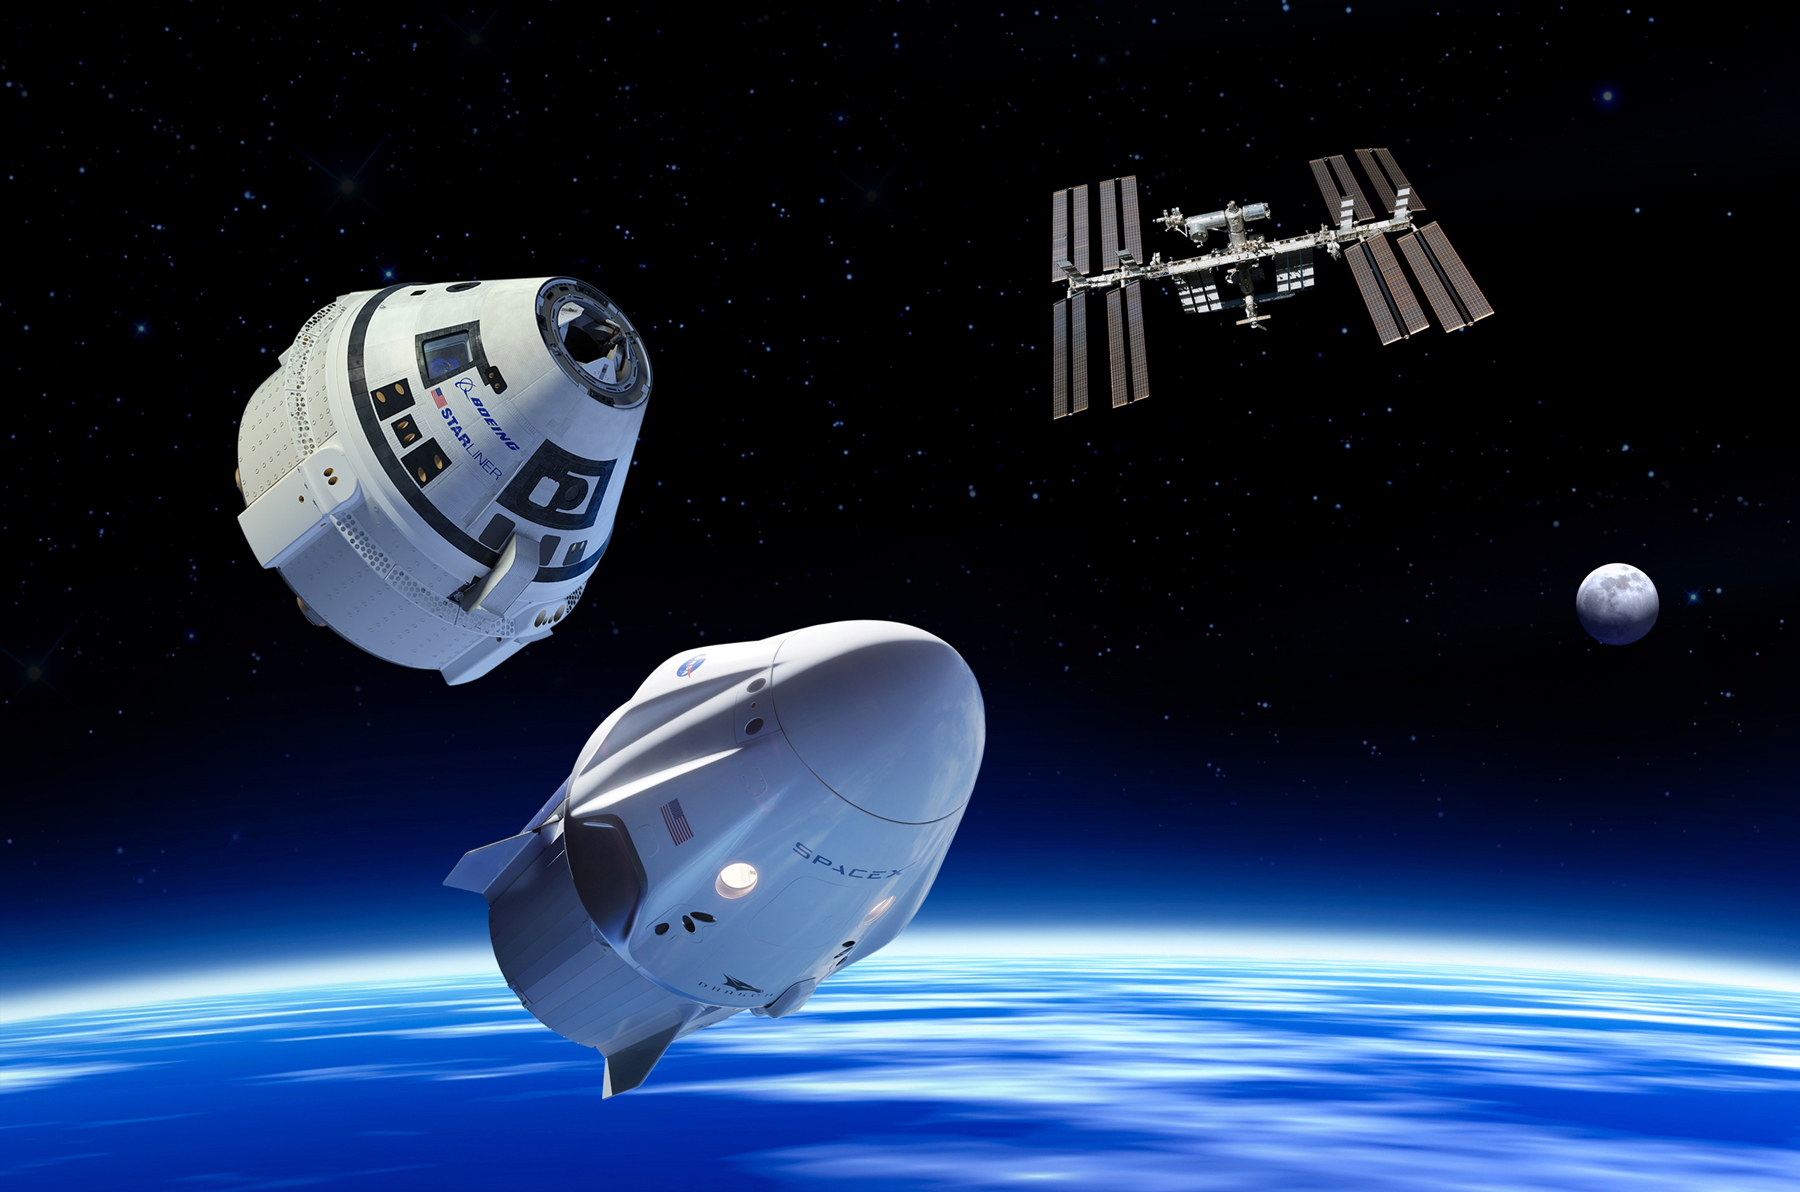 $90 Million Per Seat? Boeing's Space Capsule Draws Criticism from Watchdog